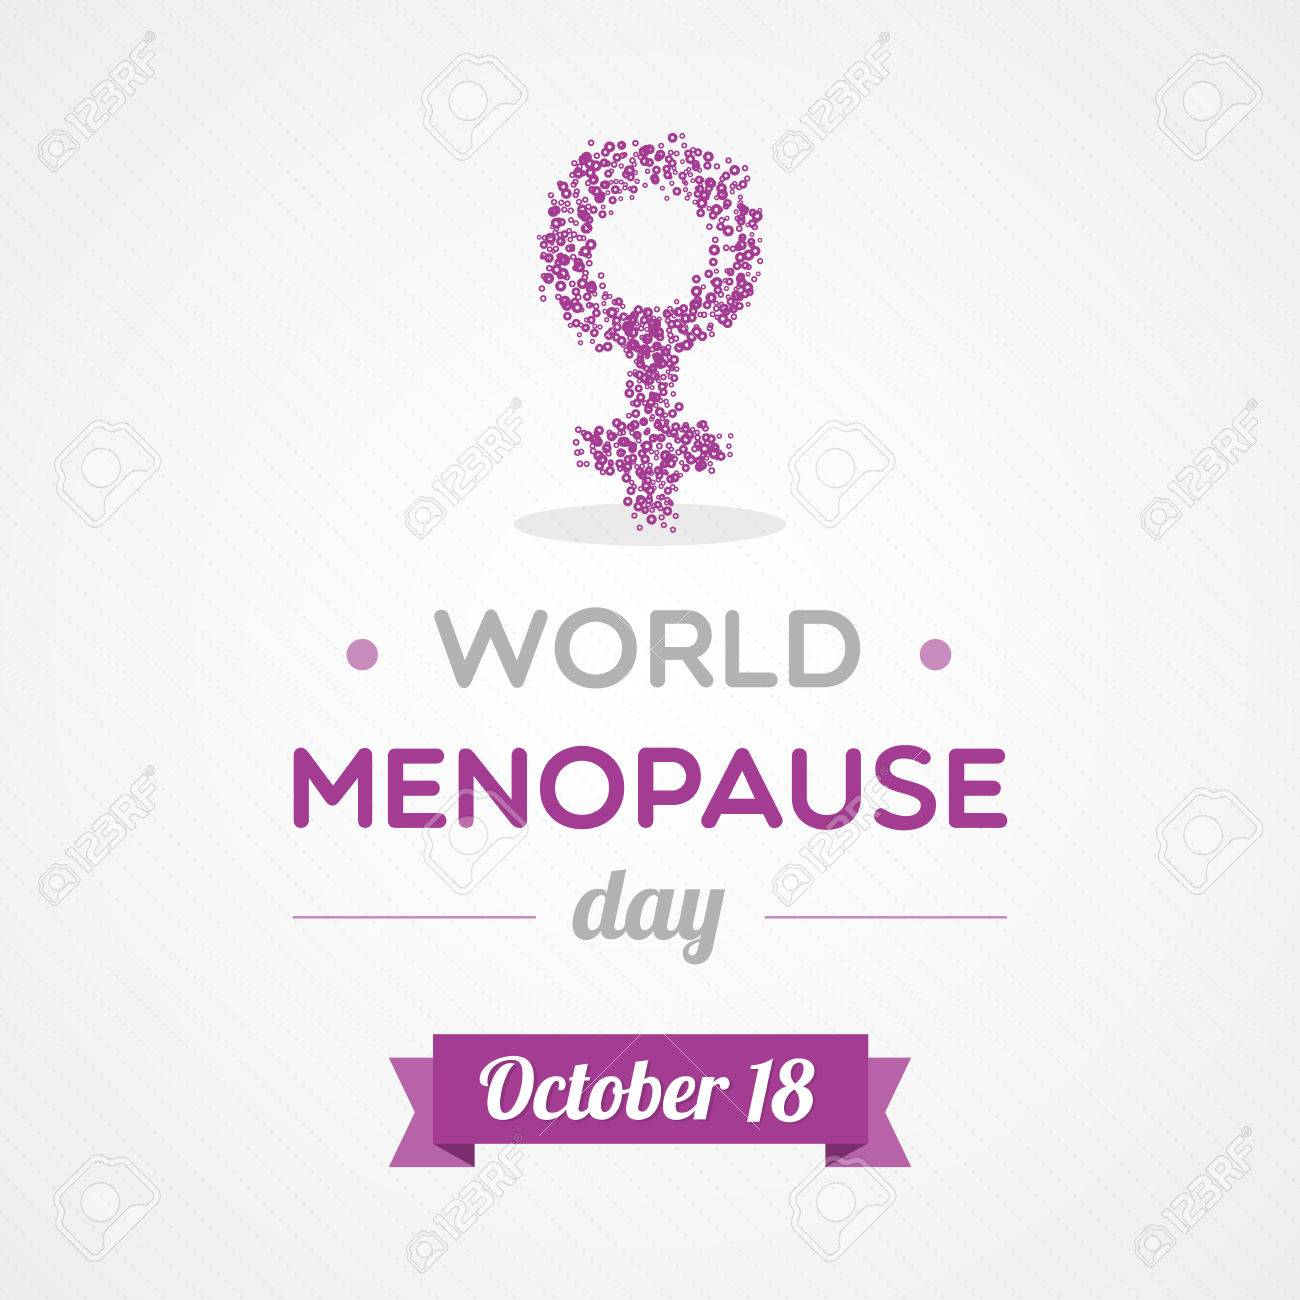 World Menopause Day images